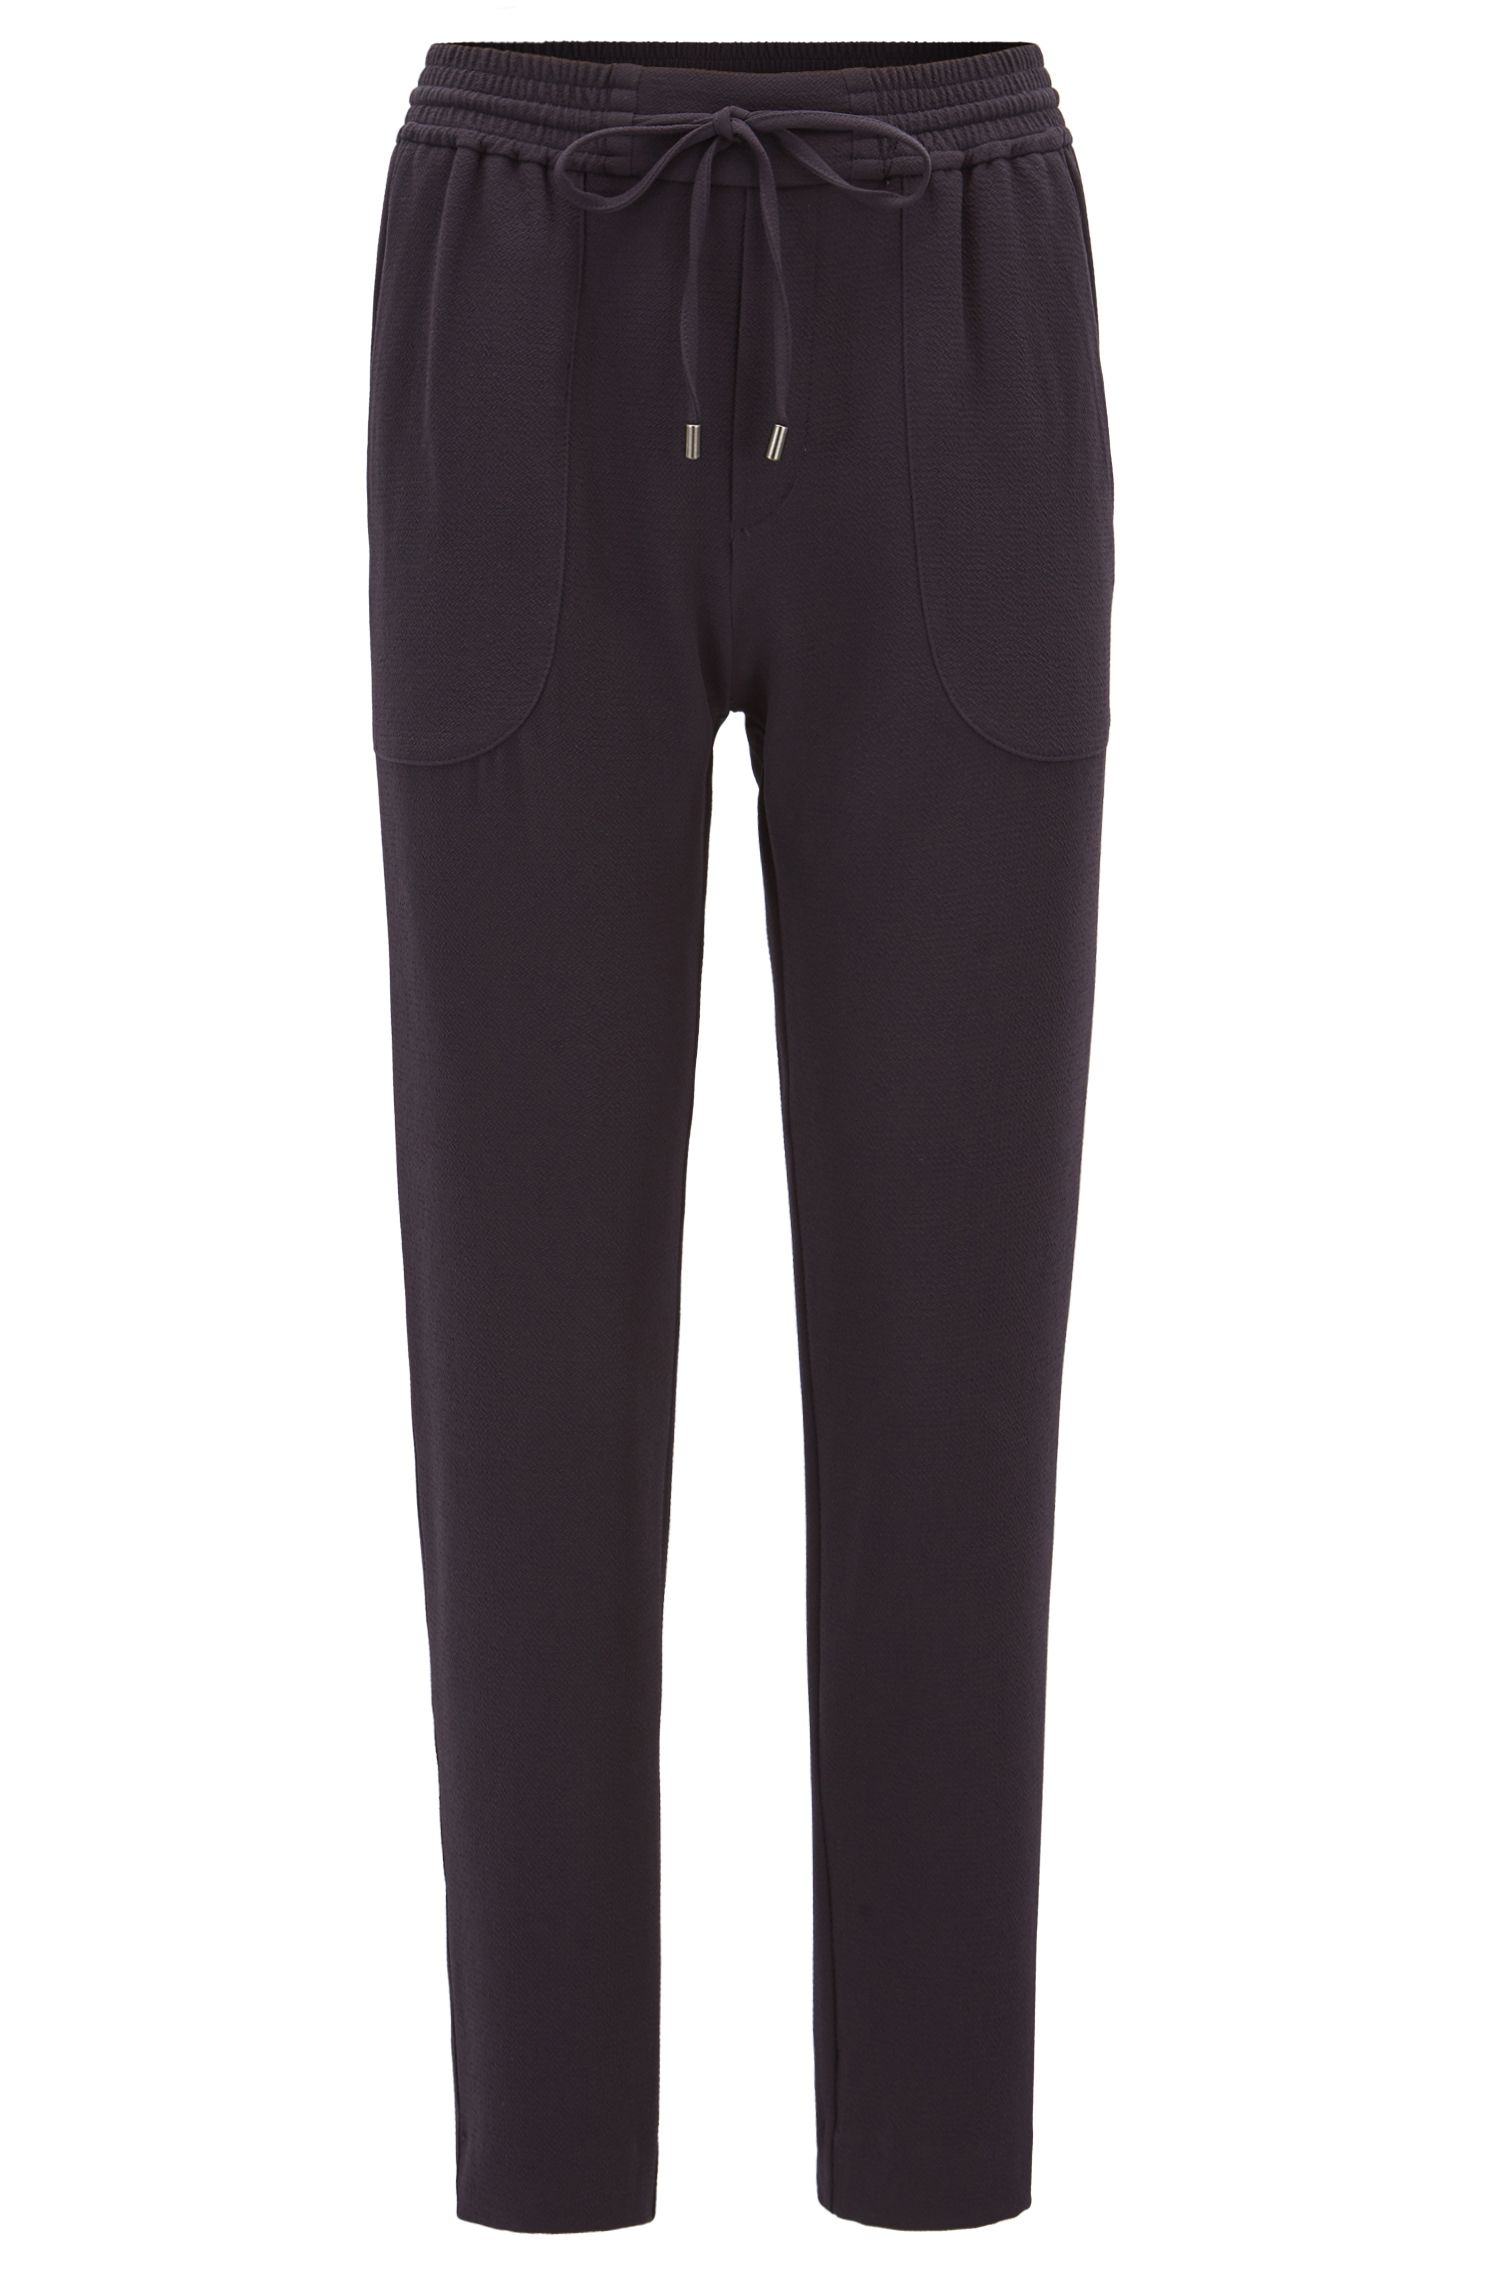 Relaxed-fit drawstring trousers in stretch crinkle crepe